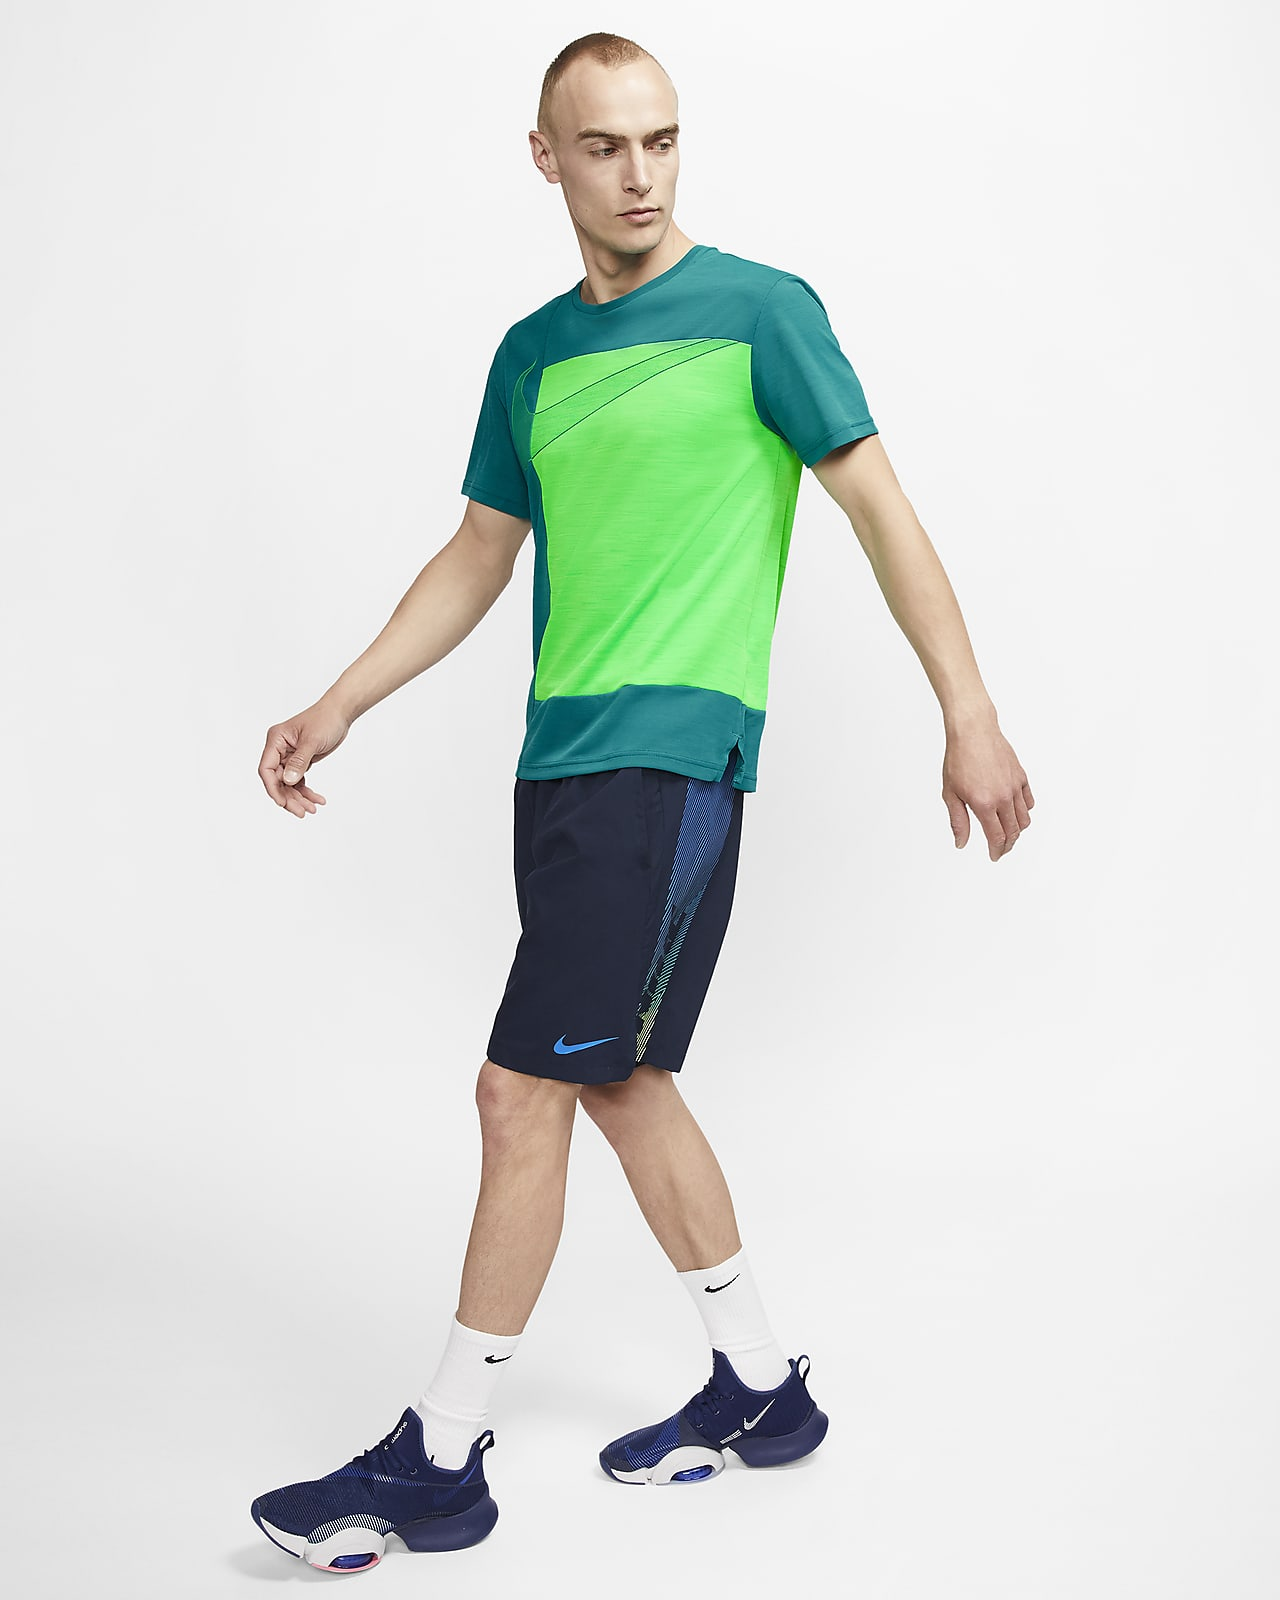 Fértil semiconductor creativo  Nike Superset Men's Short-Sleeve Graphic Training Top. Nike.com